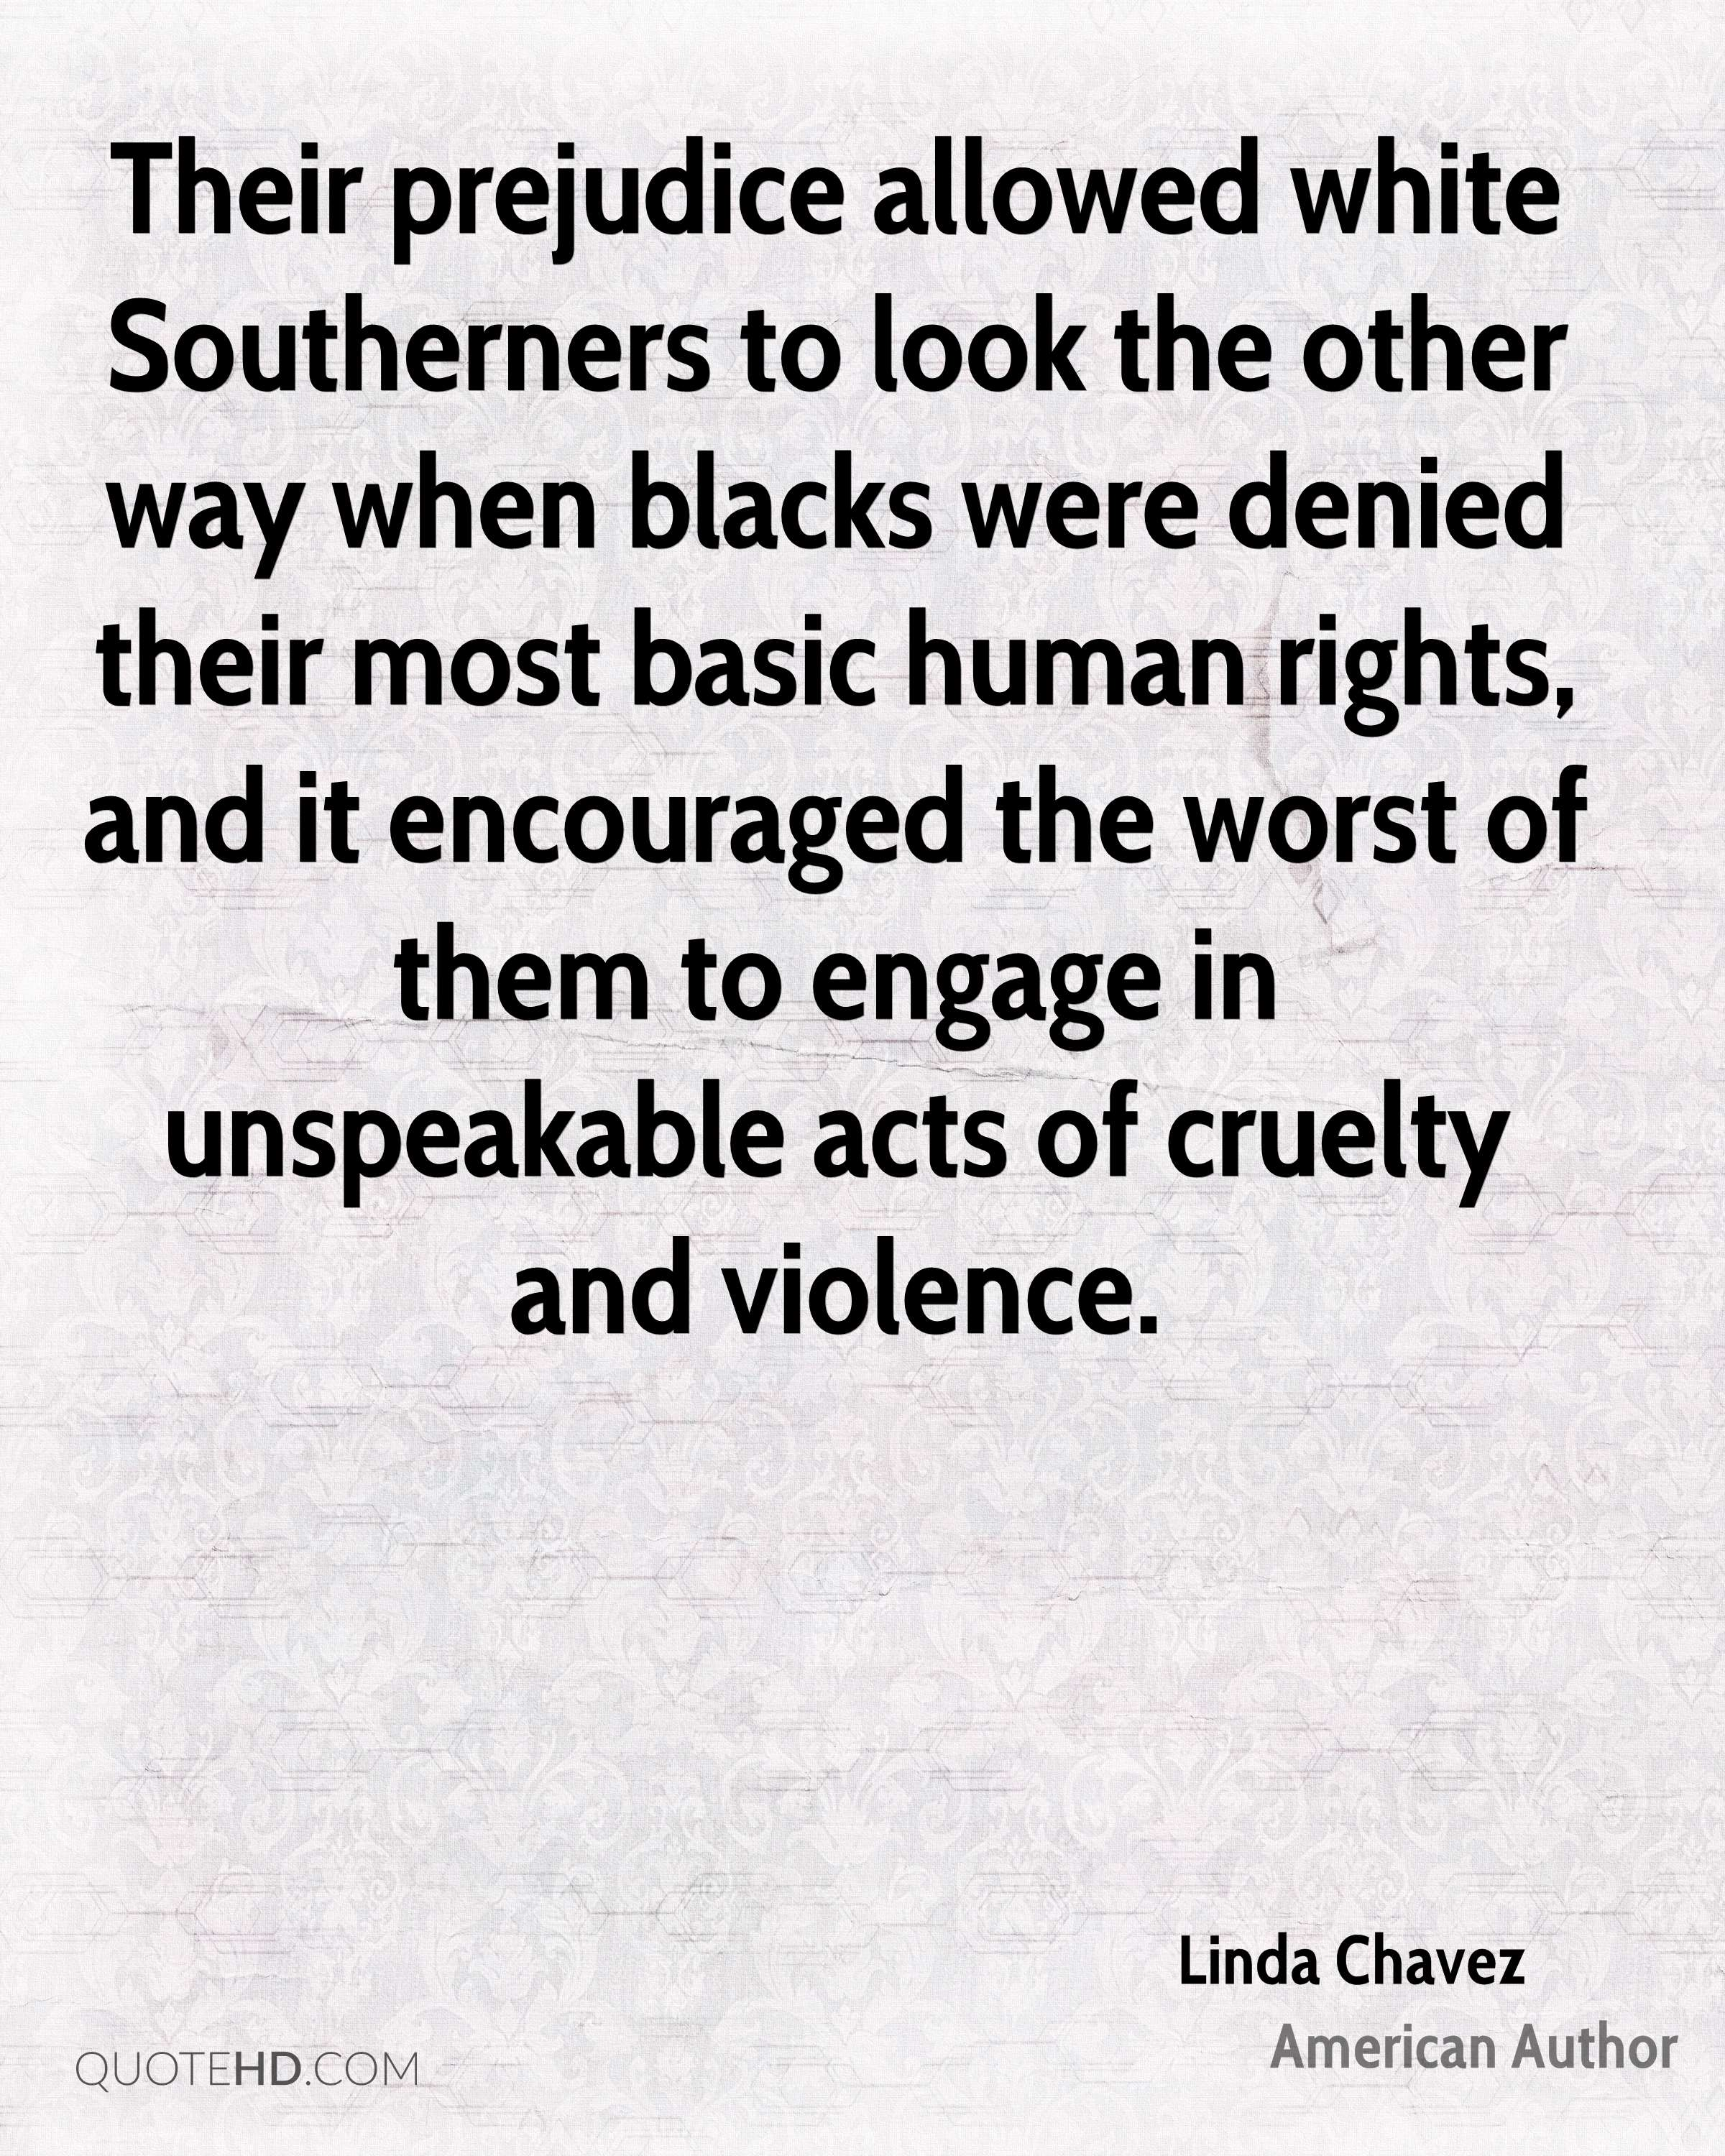 Their prejudice allowed white Southerners to look the other way when blacks were denied their most basic human rights, and it encouraged the worst of them to engage in unspeakable acts of cruelty and violence.